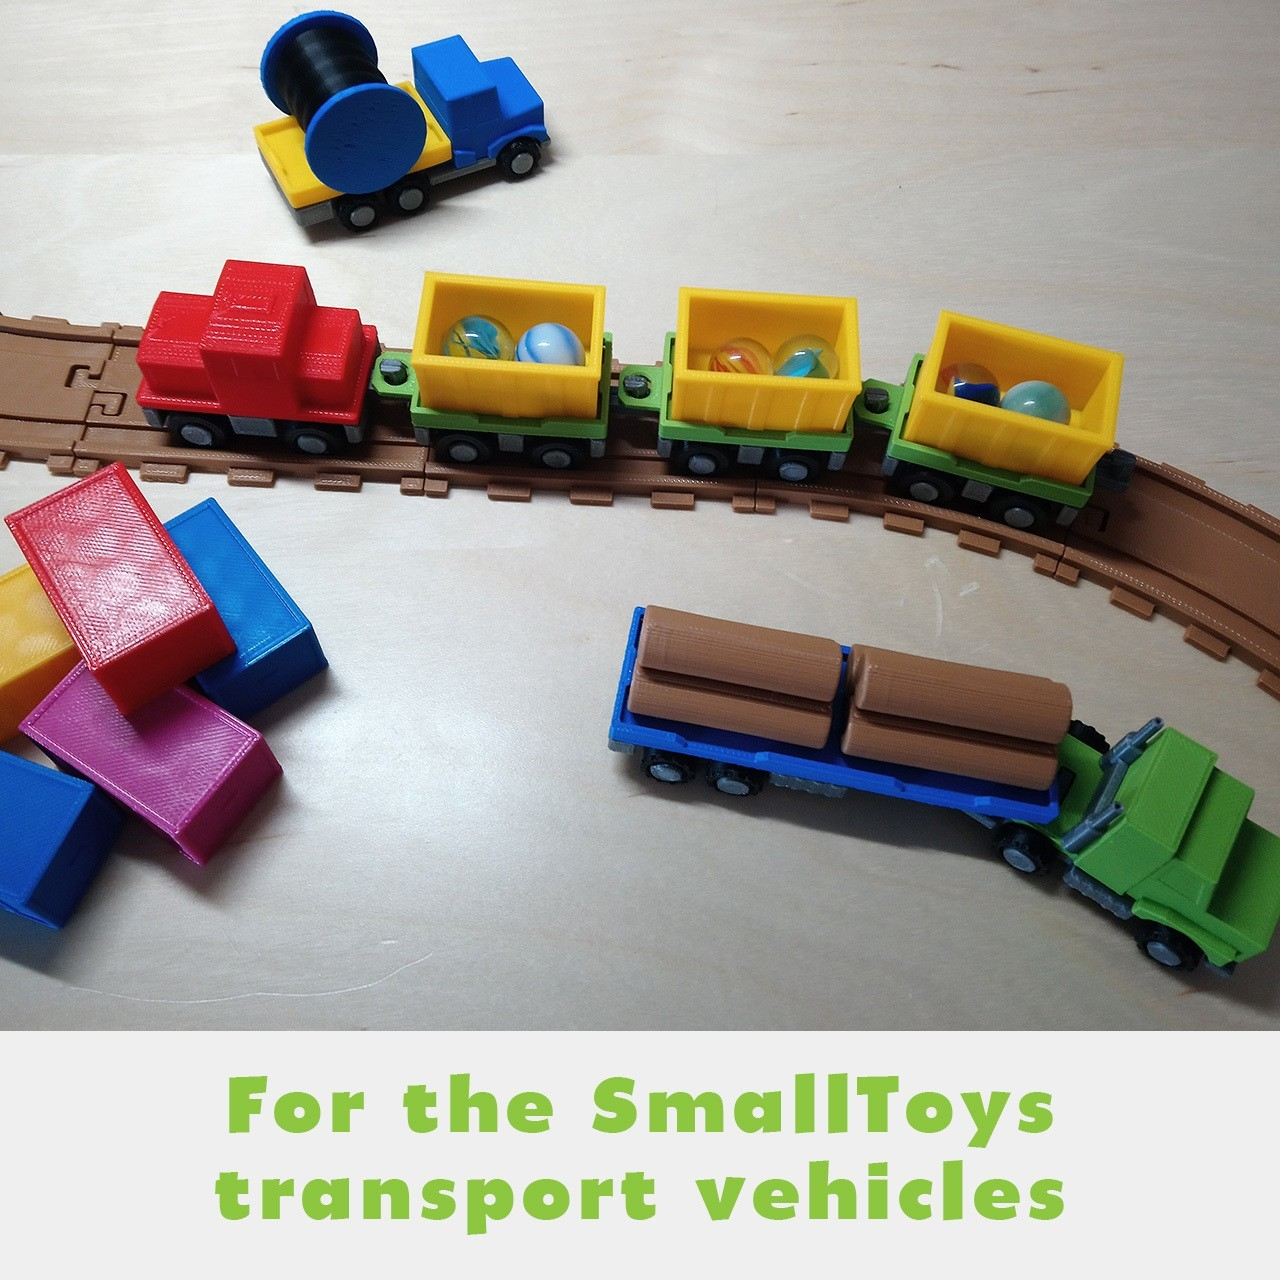 smalltoys-fa03.jpg Download free STL file SmallToys - Freight Accessories • 3D print template, Wabby